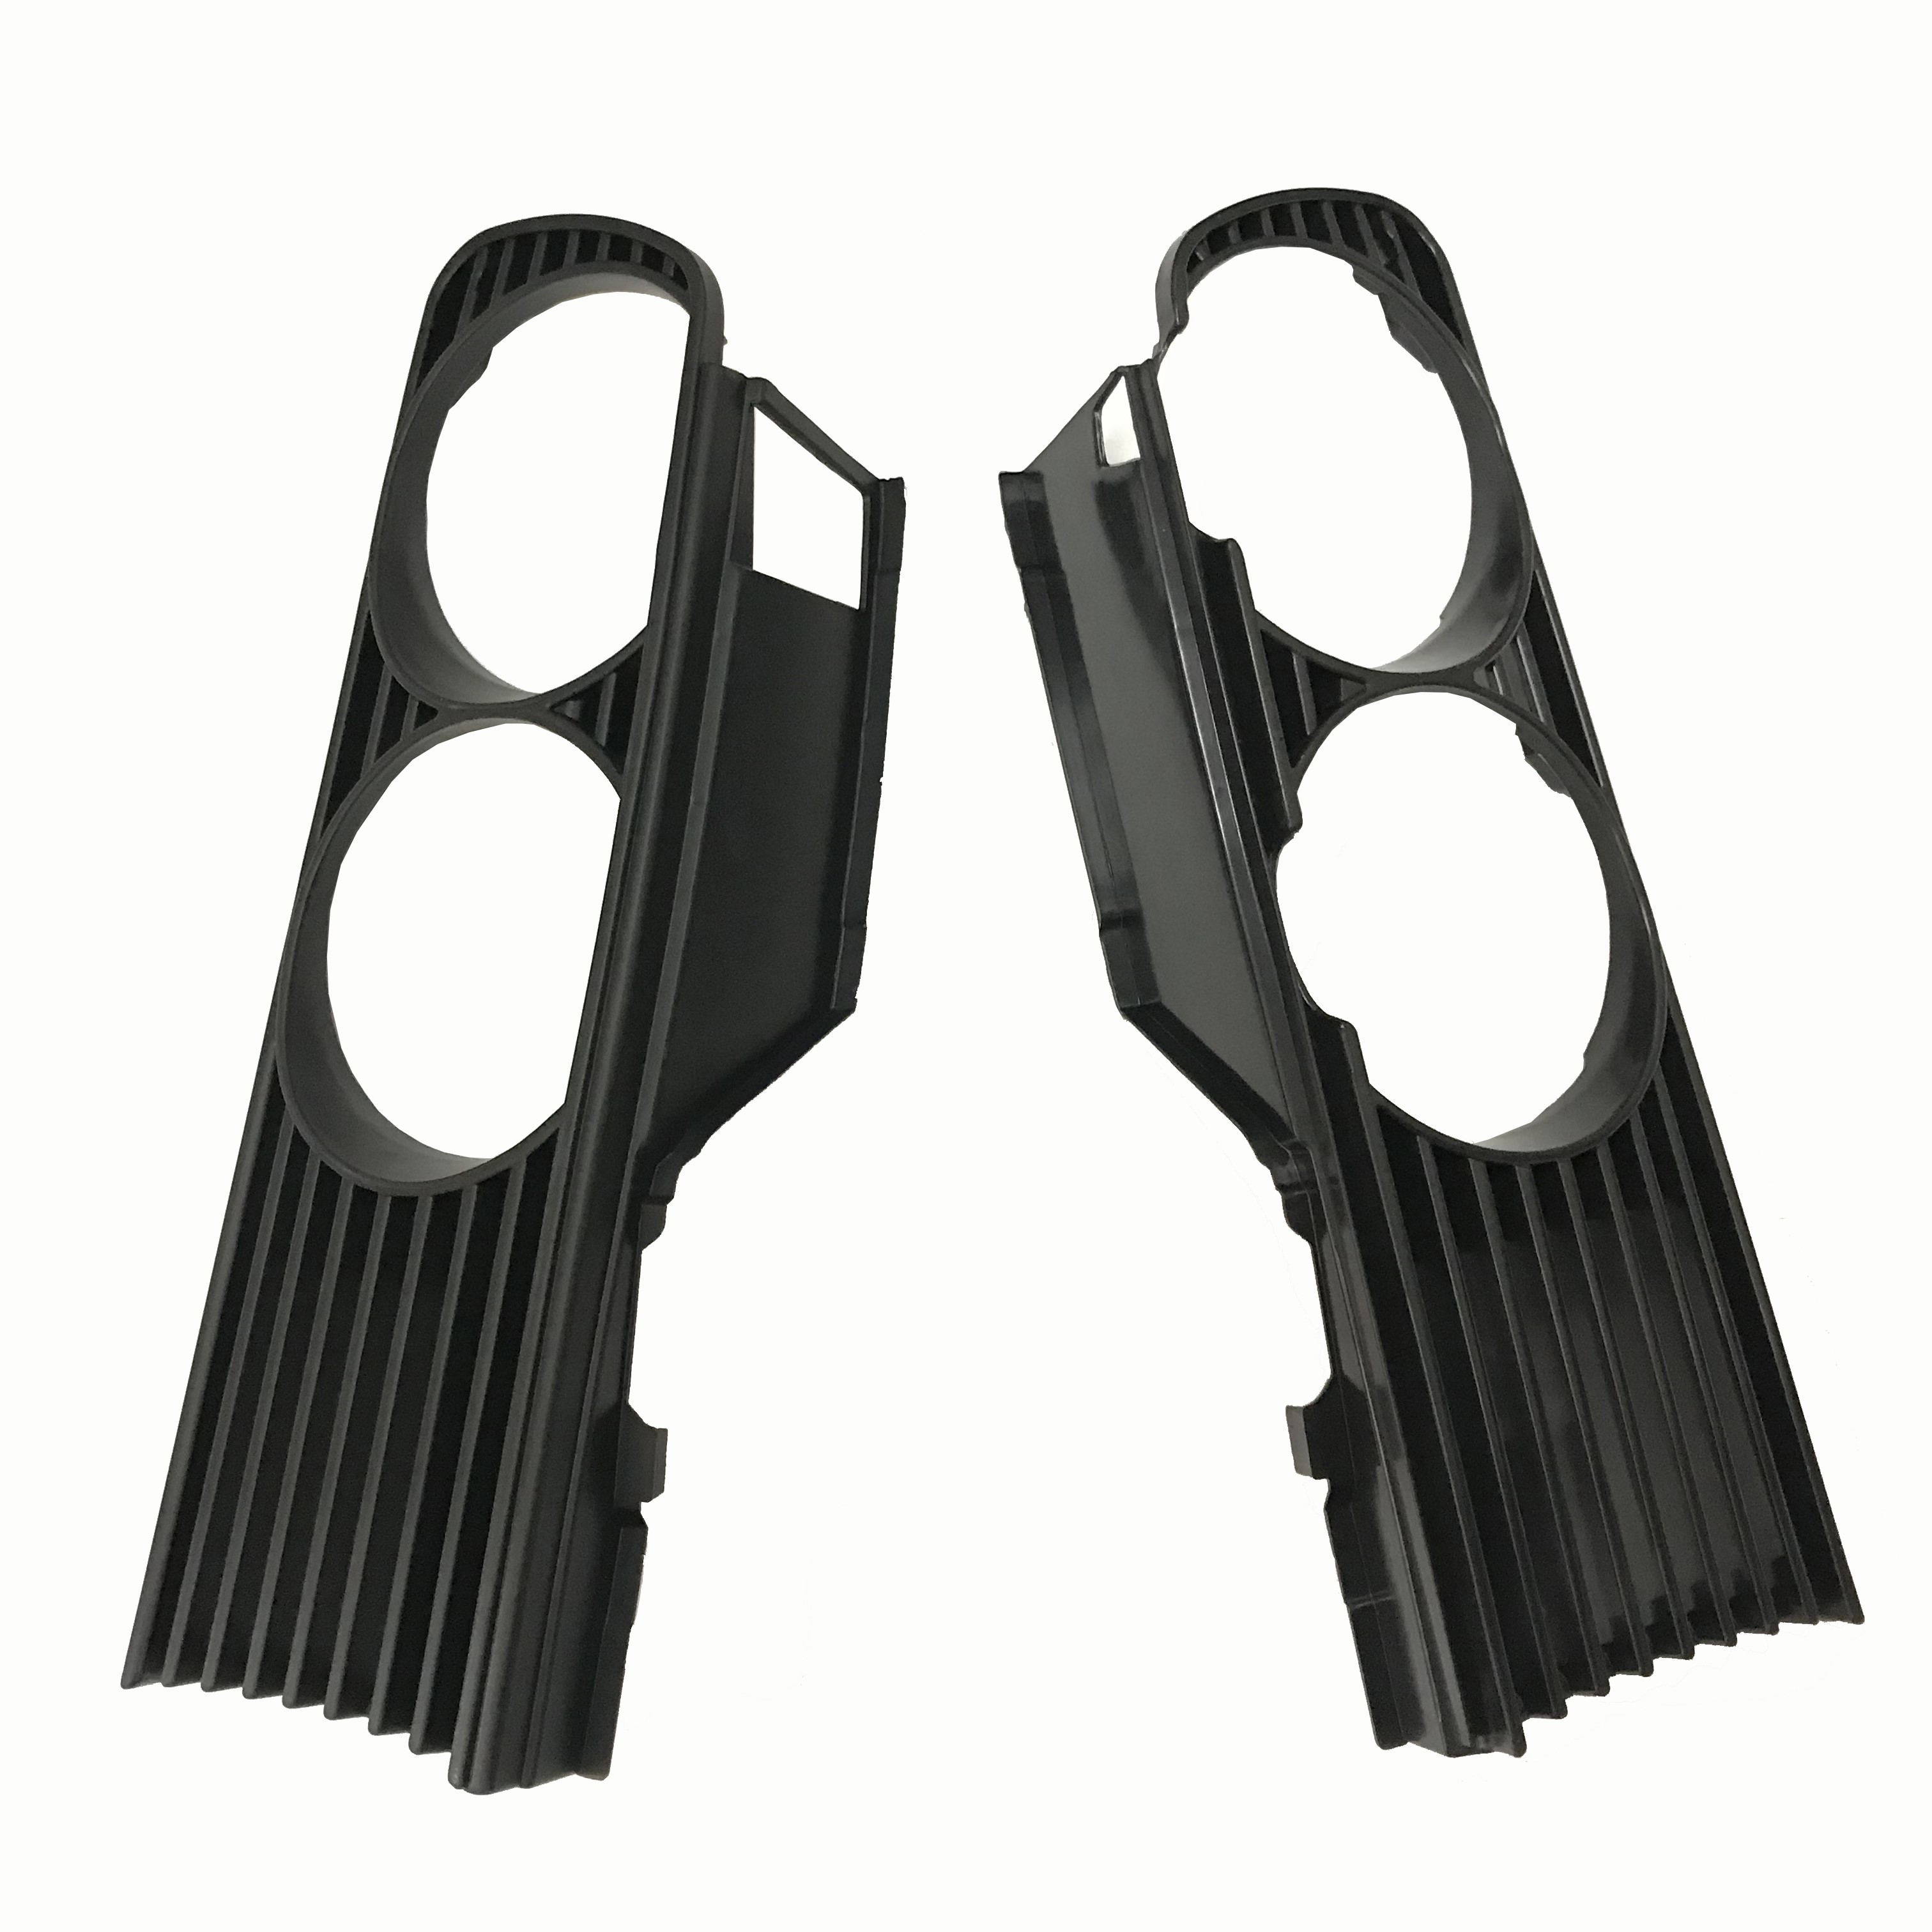 1 Pair OEM Auto Front Head lamp light headlight Grille Case cover For BMW <font><b>E30</b></font> 318i 318is 325es 325i 1983-1991 image